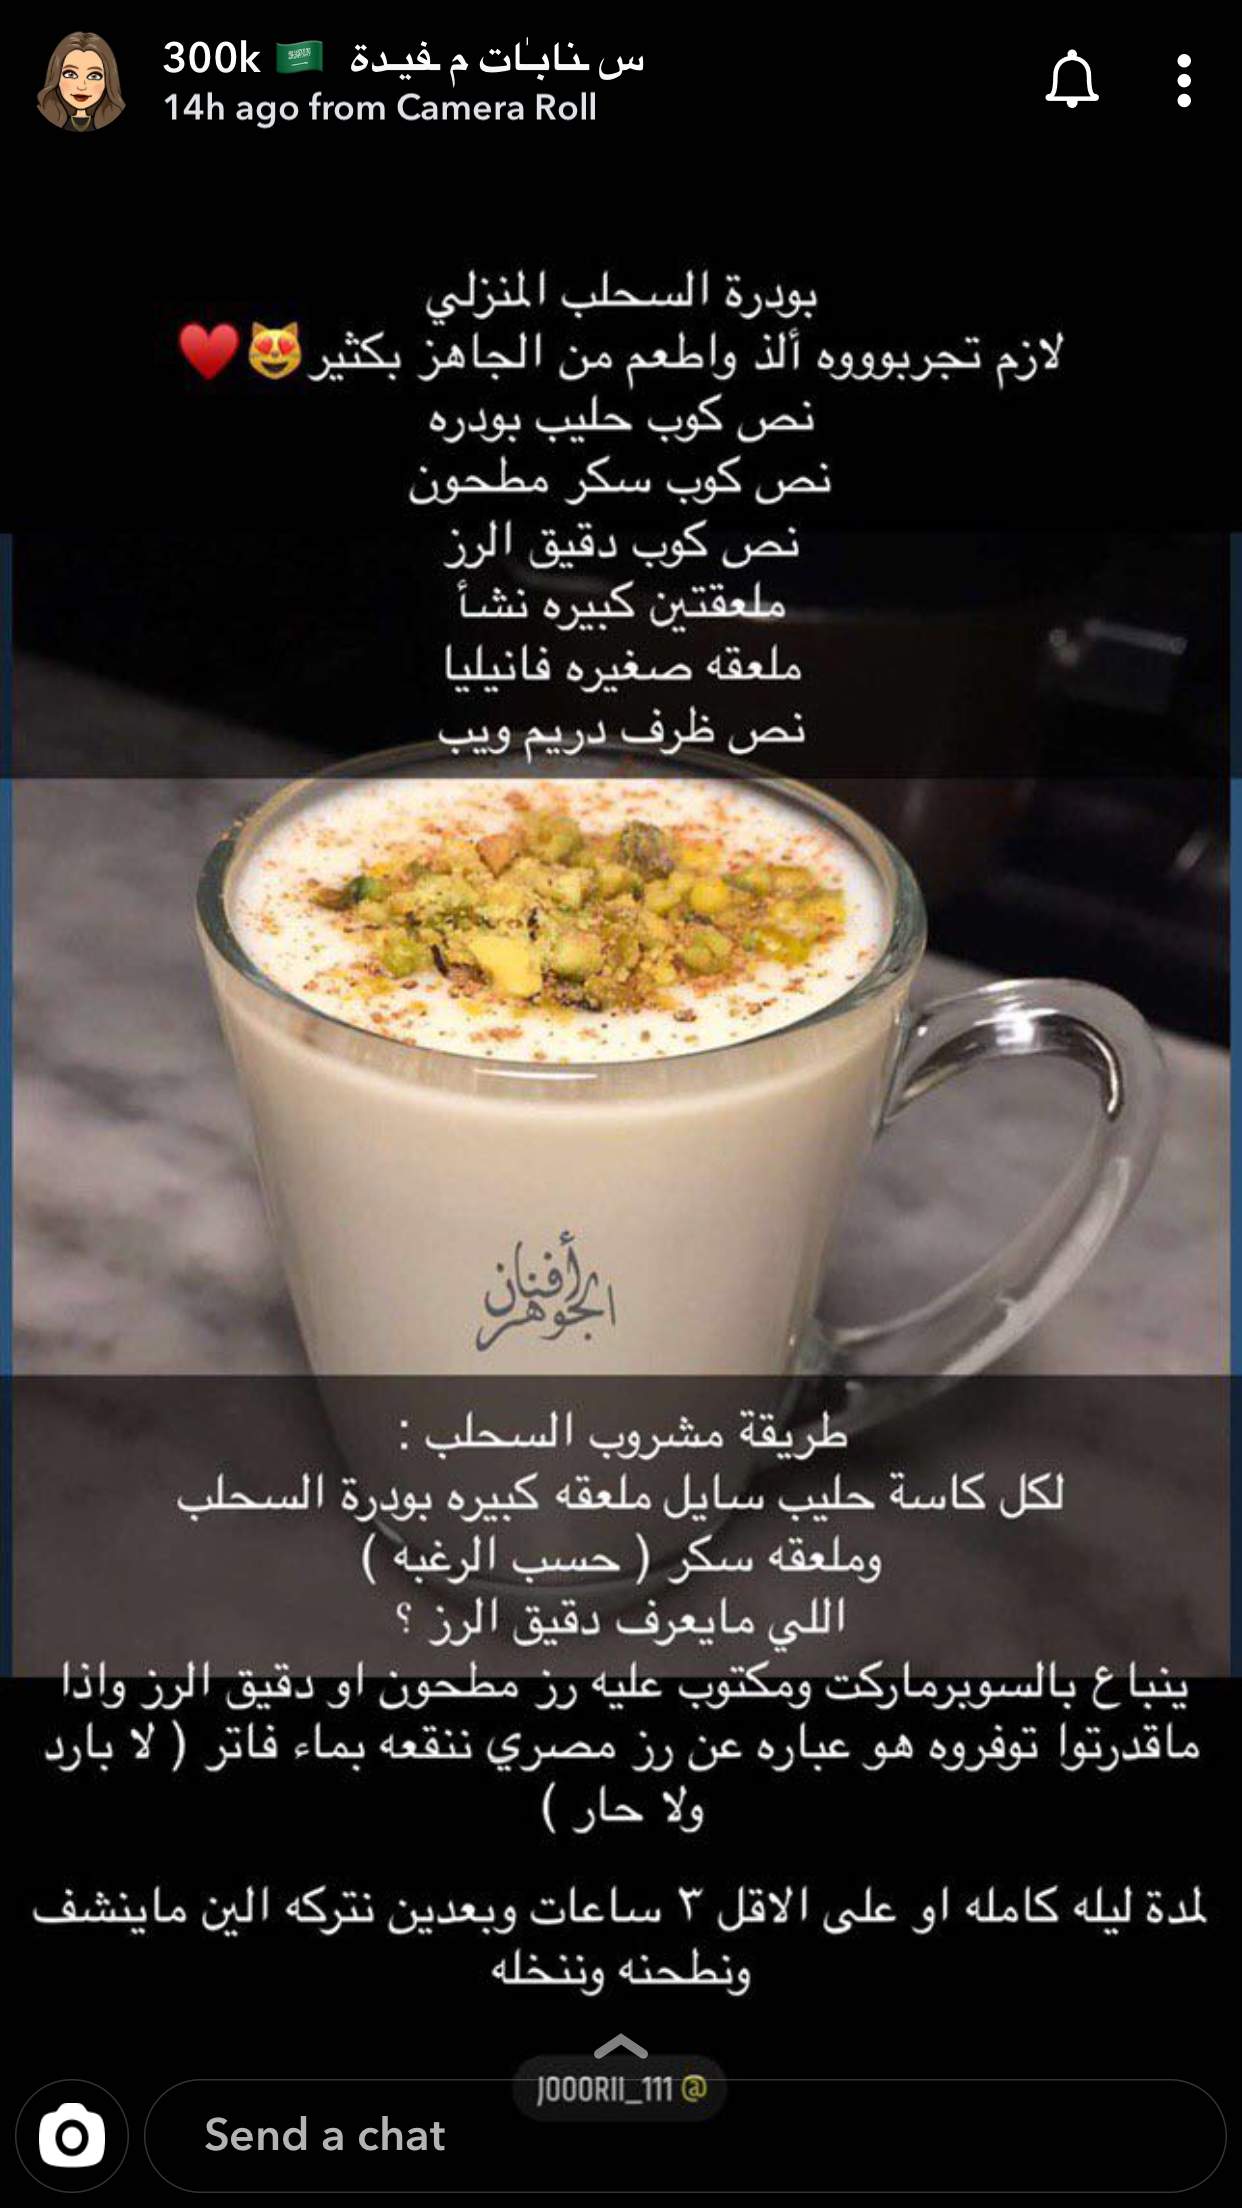 Coffee drink recipes image by Maryam Alali on مشروبات